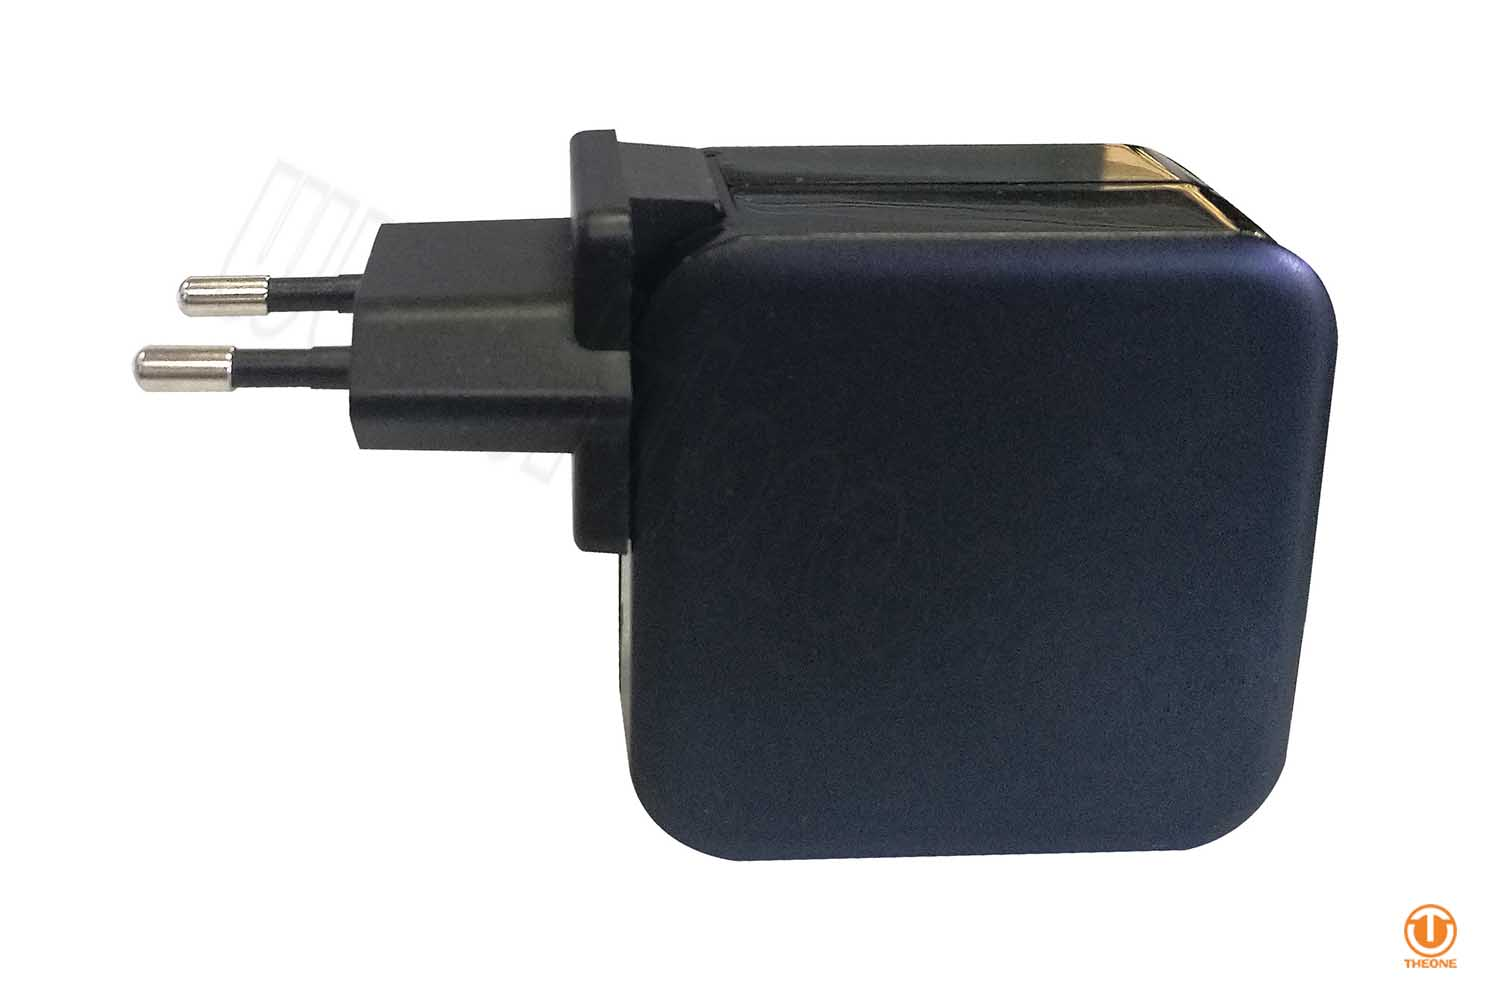 usb-c pd charger qc3.0 with interchangeable plugs